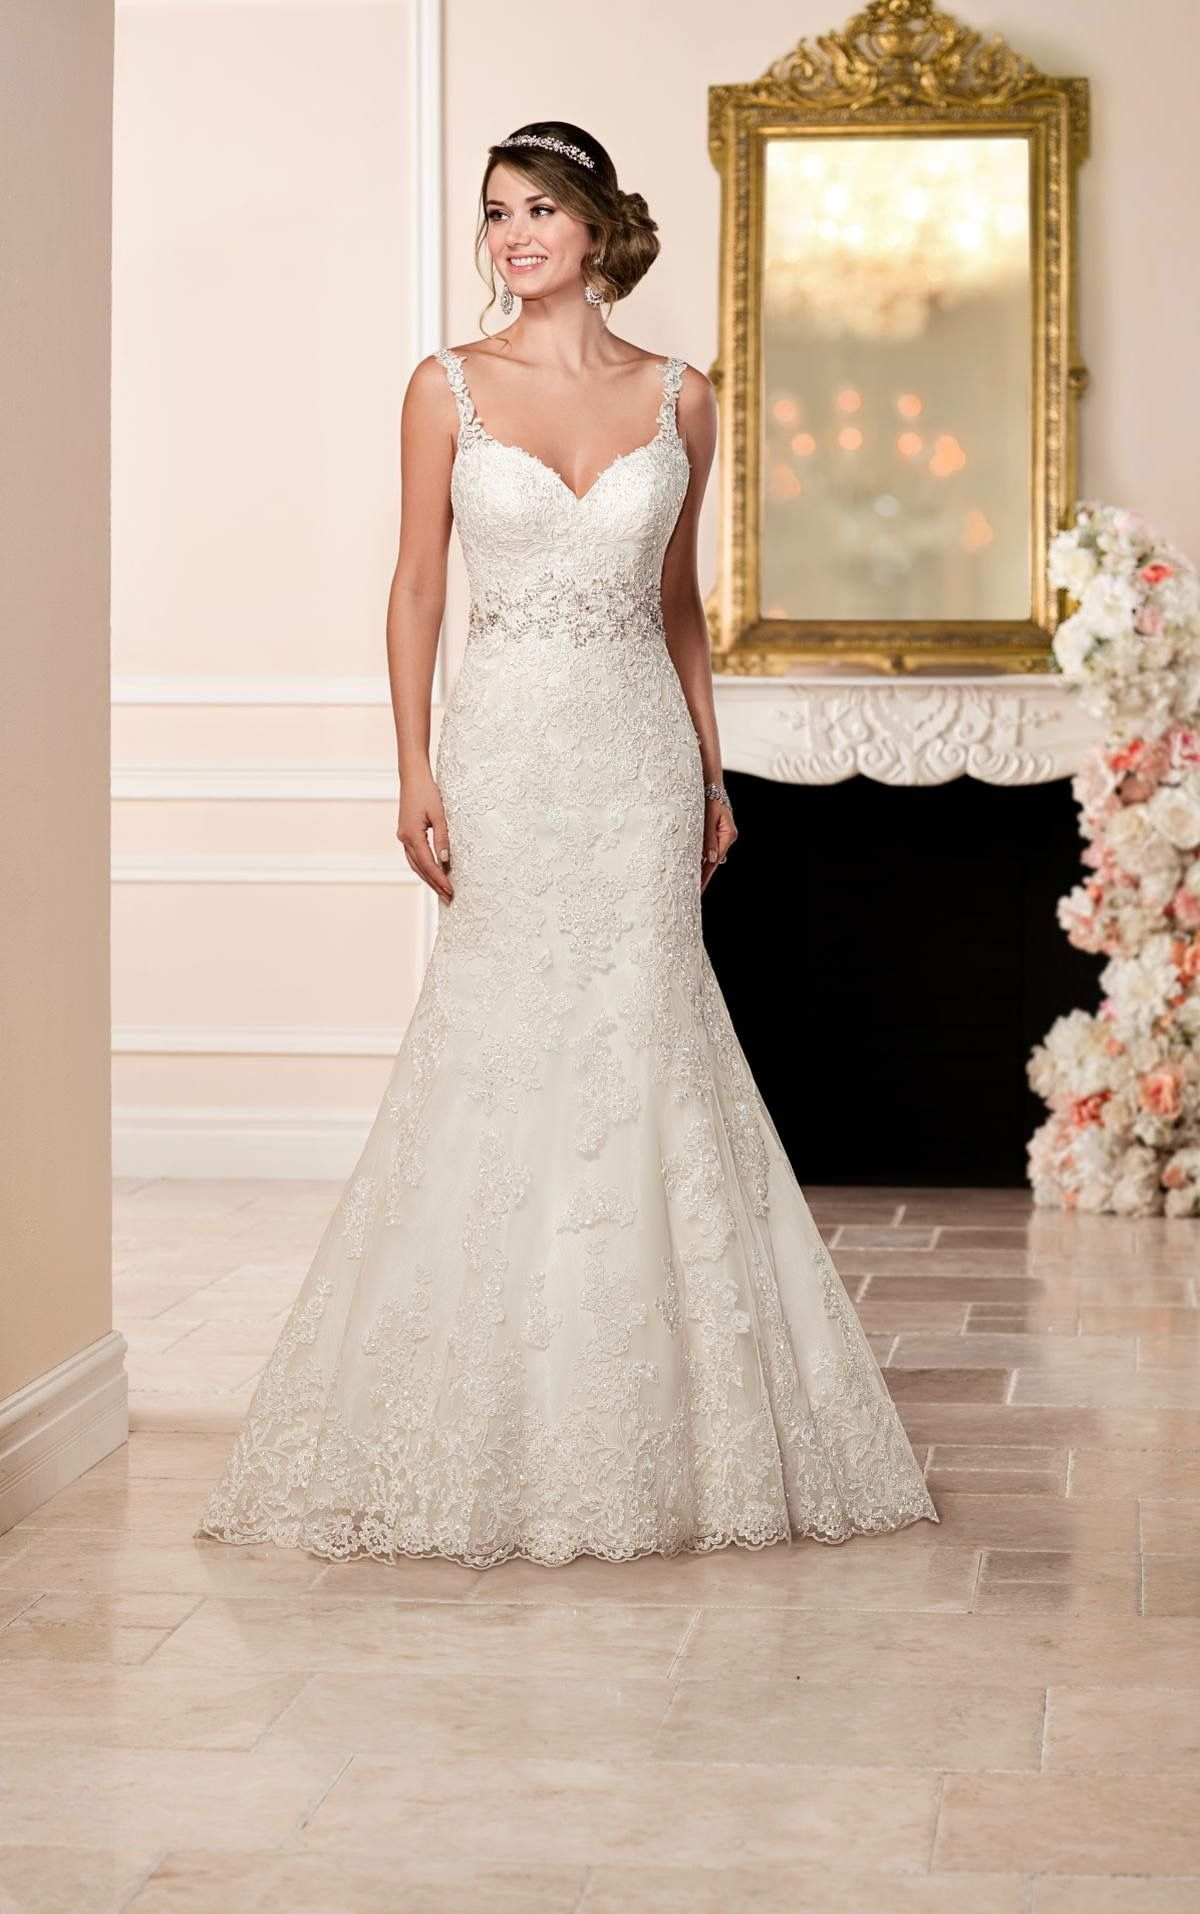 Lace fit and flare wedding dress with sleeves  Pin by Sarah Hamilton on wedding day ideas  Pinterest  Wedding